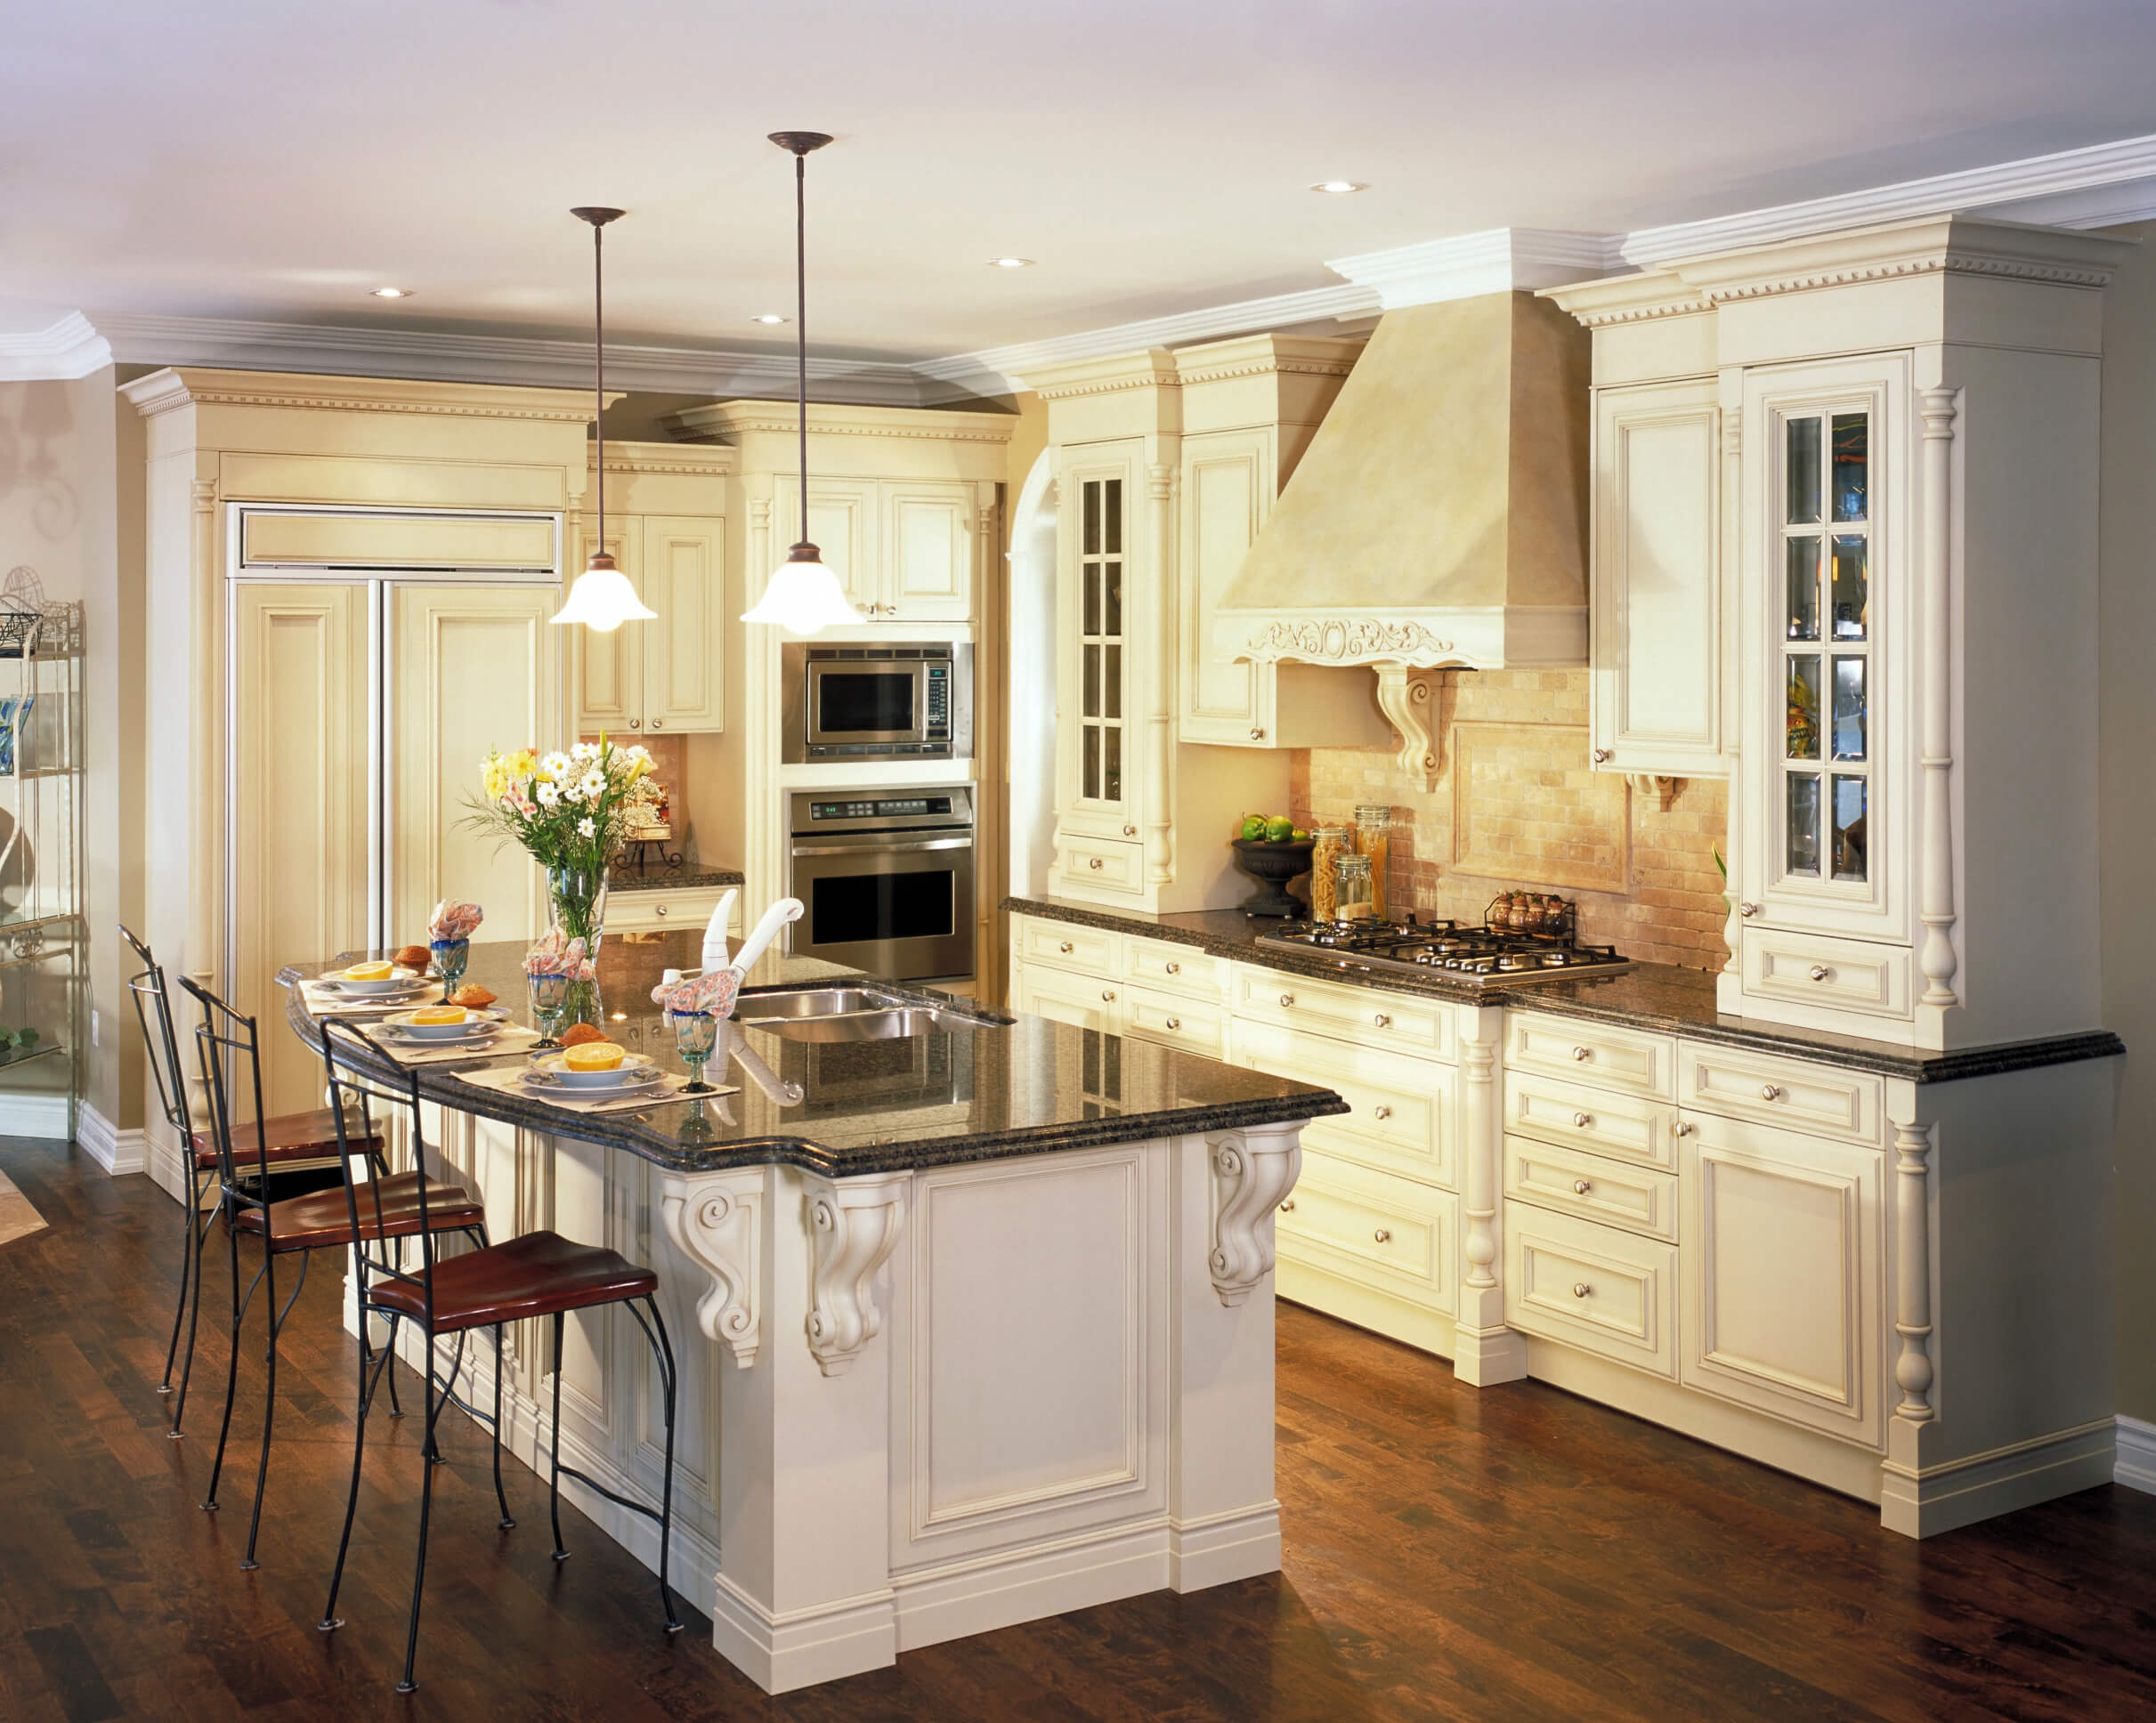 dream kitchen designs white kitchen designs Kitchen featuring great contrast between dark wood flooring white cabinetry and black marble countertops